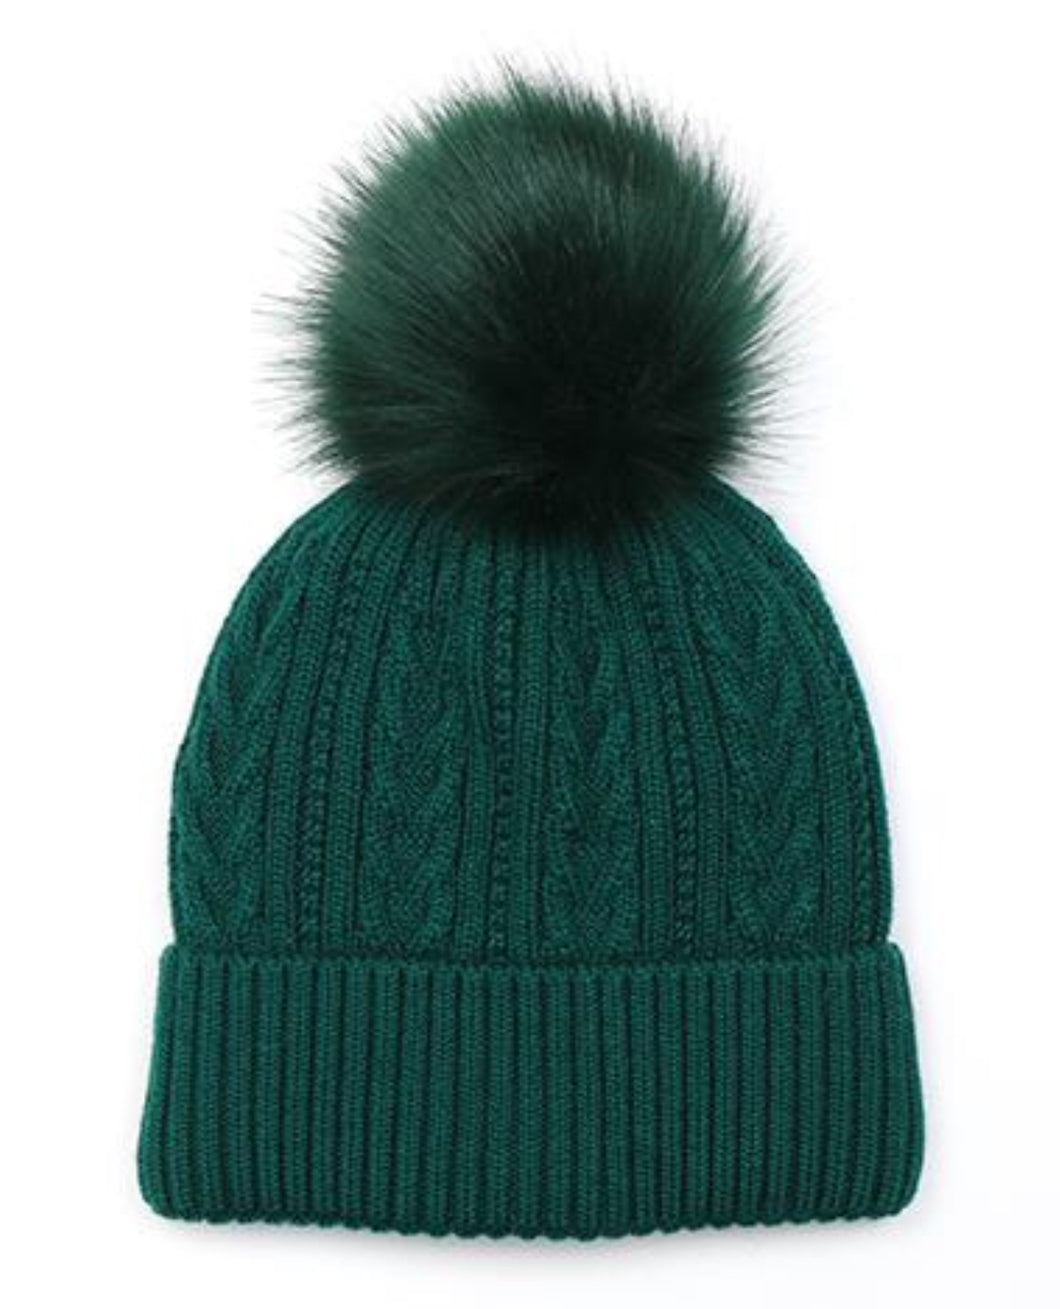 Emerald Green cable knit faux fur bobble hat